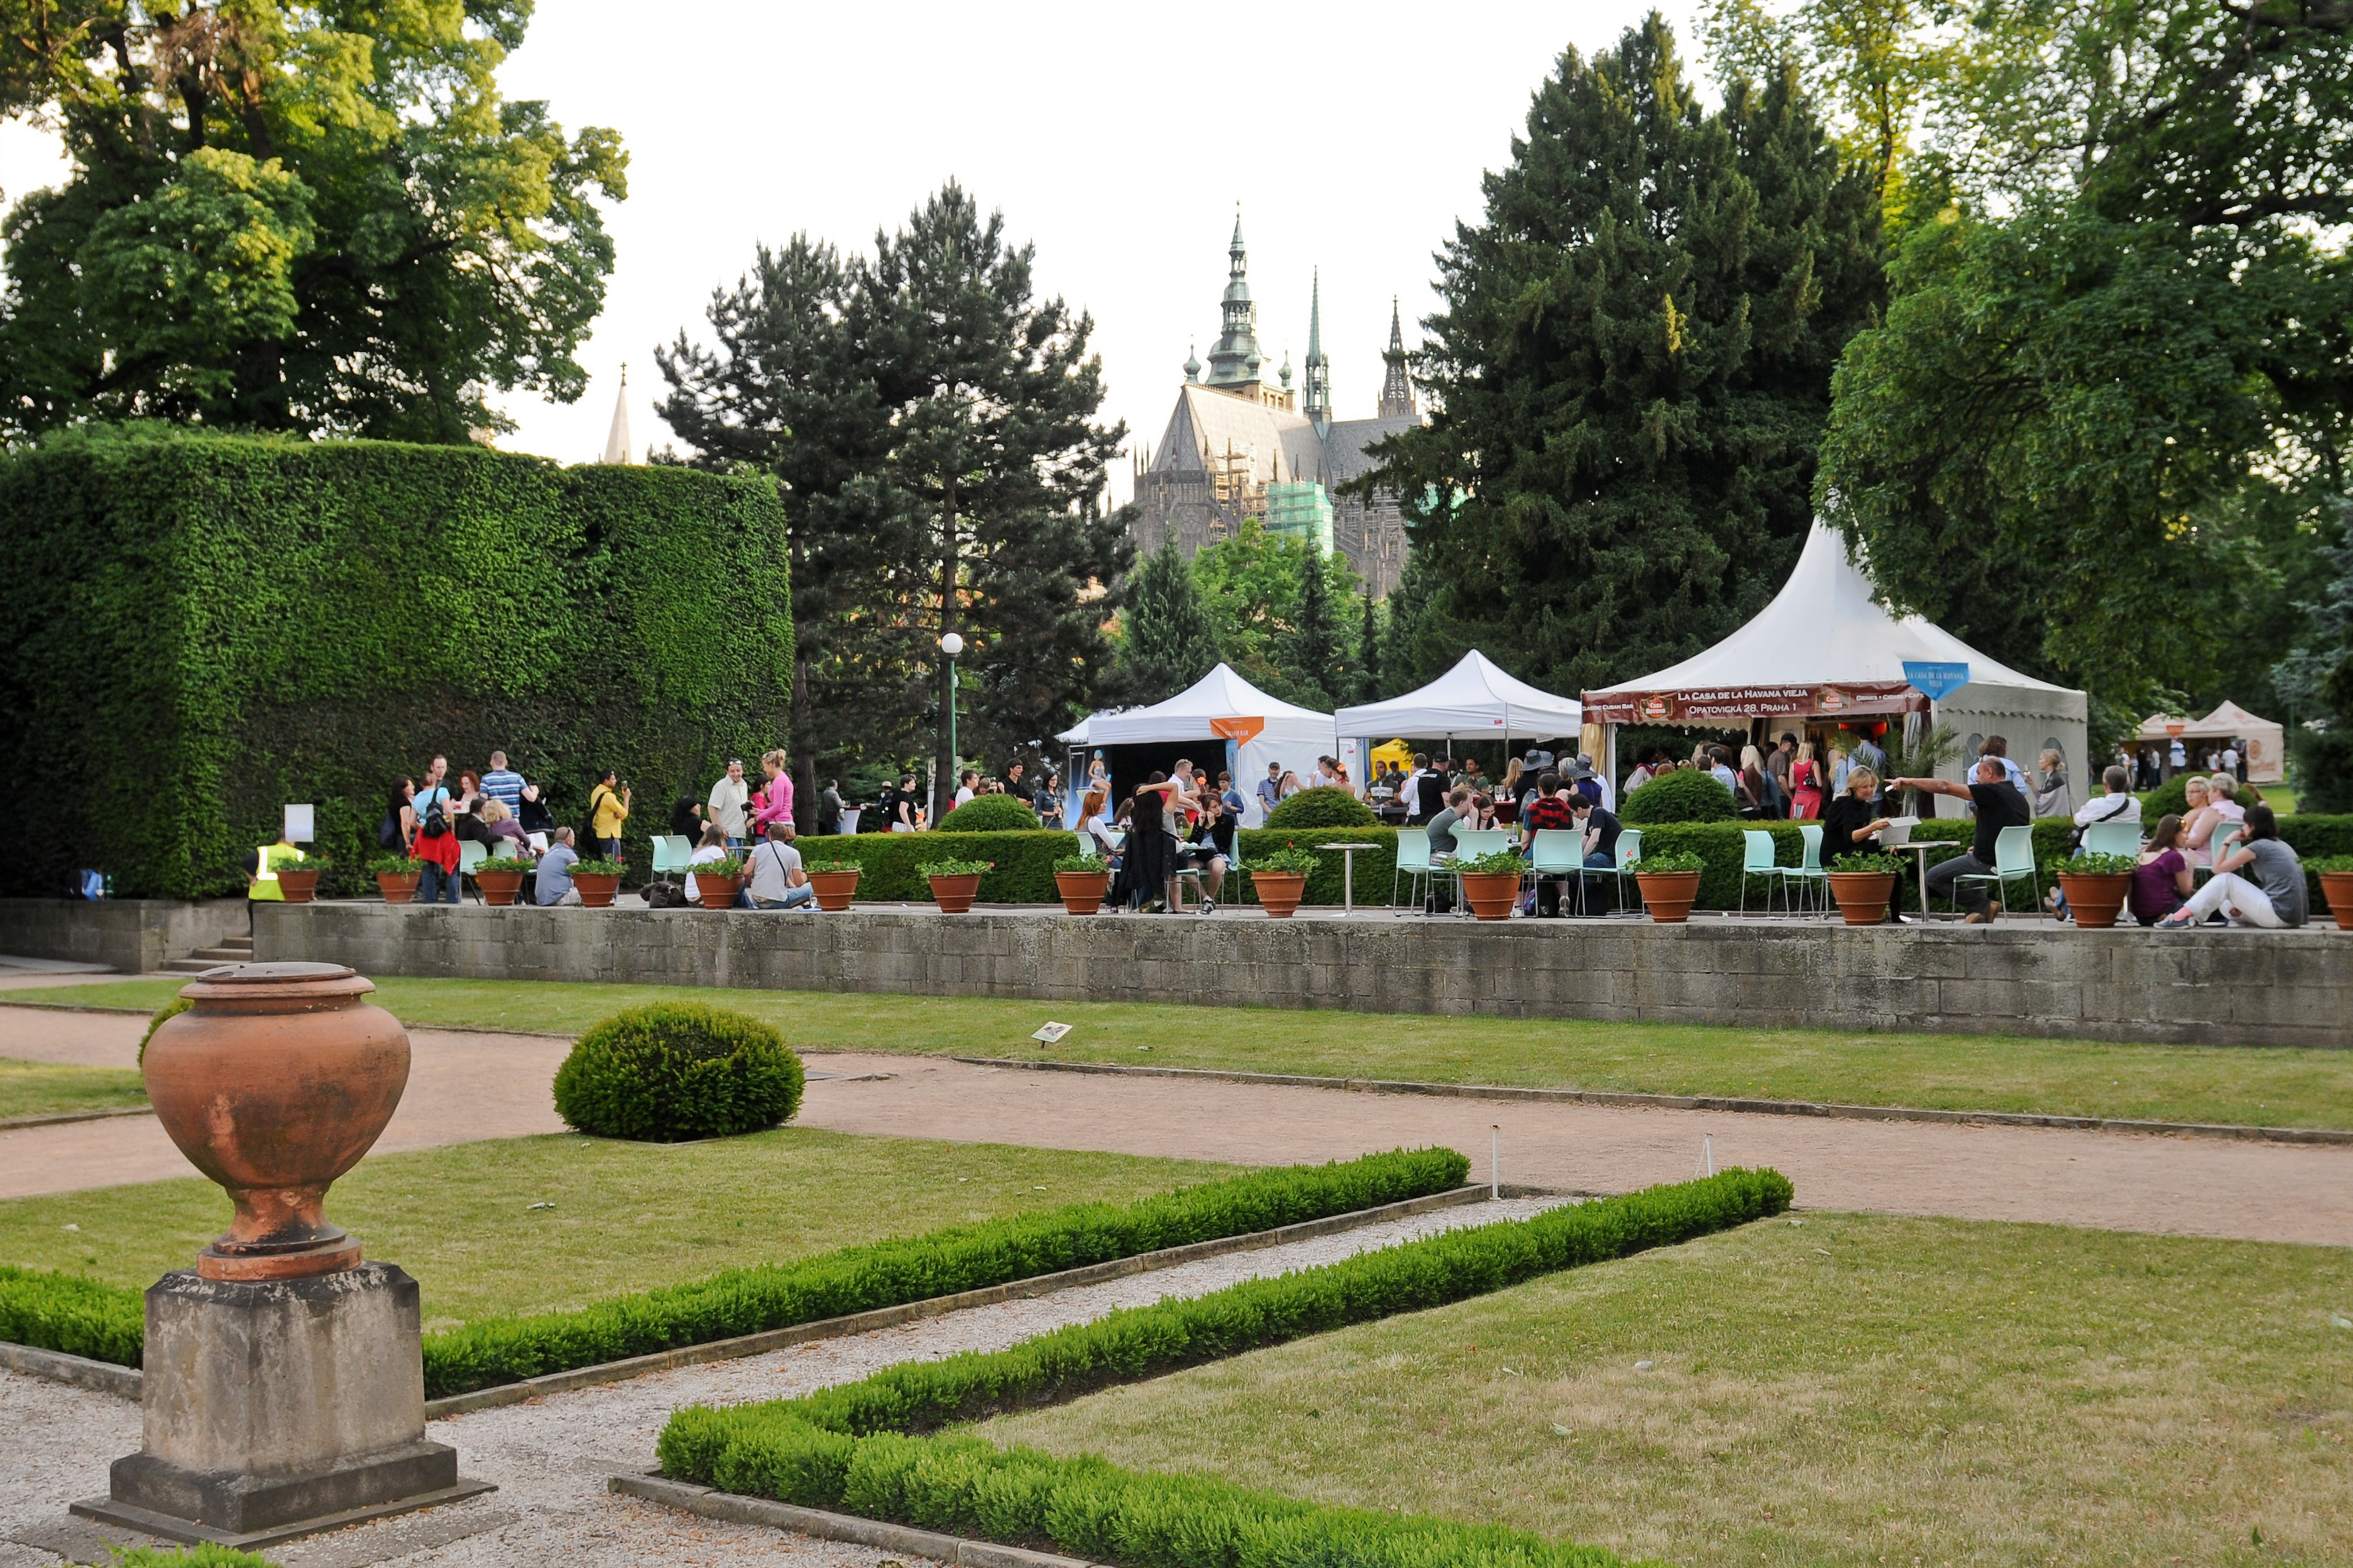 A lavish feast on the lawn and under the trees of the Royal Gardens at Prague Castle!